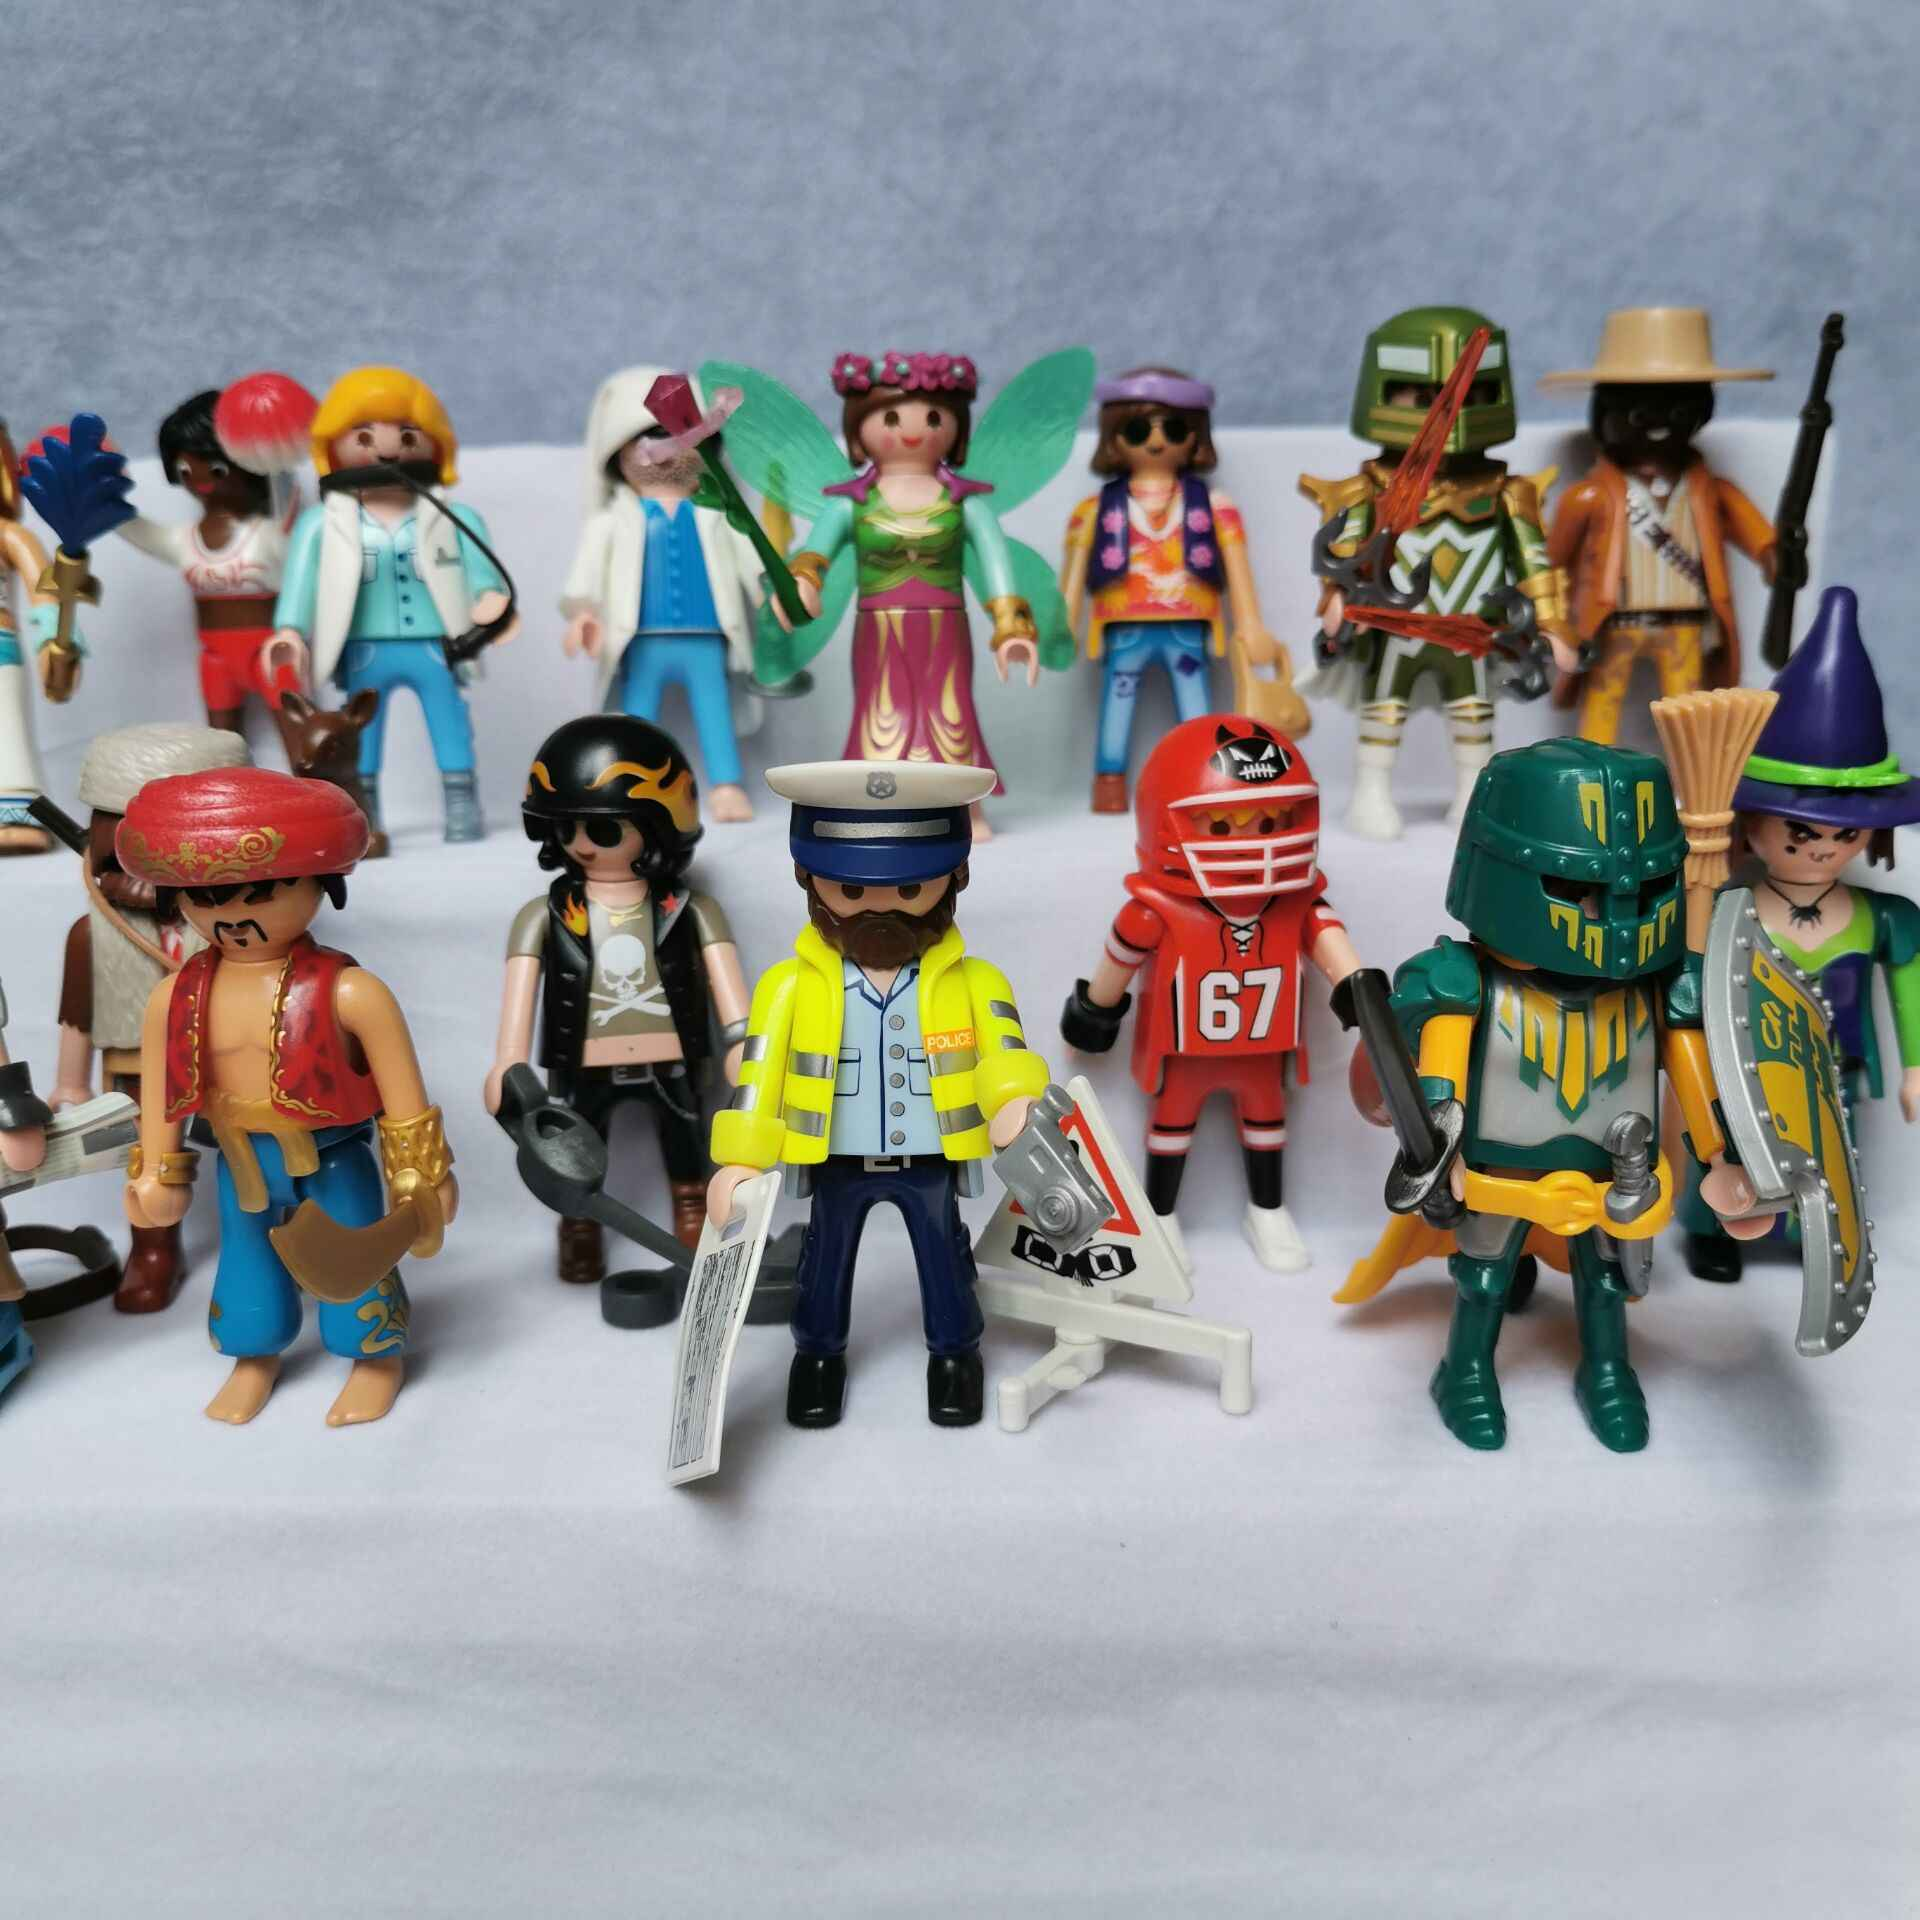 M027 7.5CM high quality of the original Playmobil Girls and boy Polly pocket building block